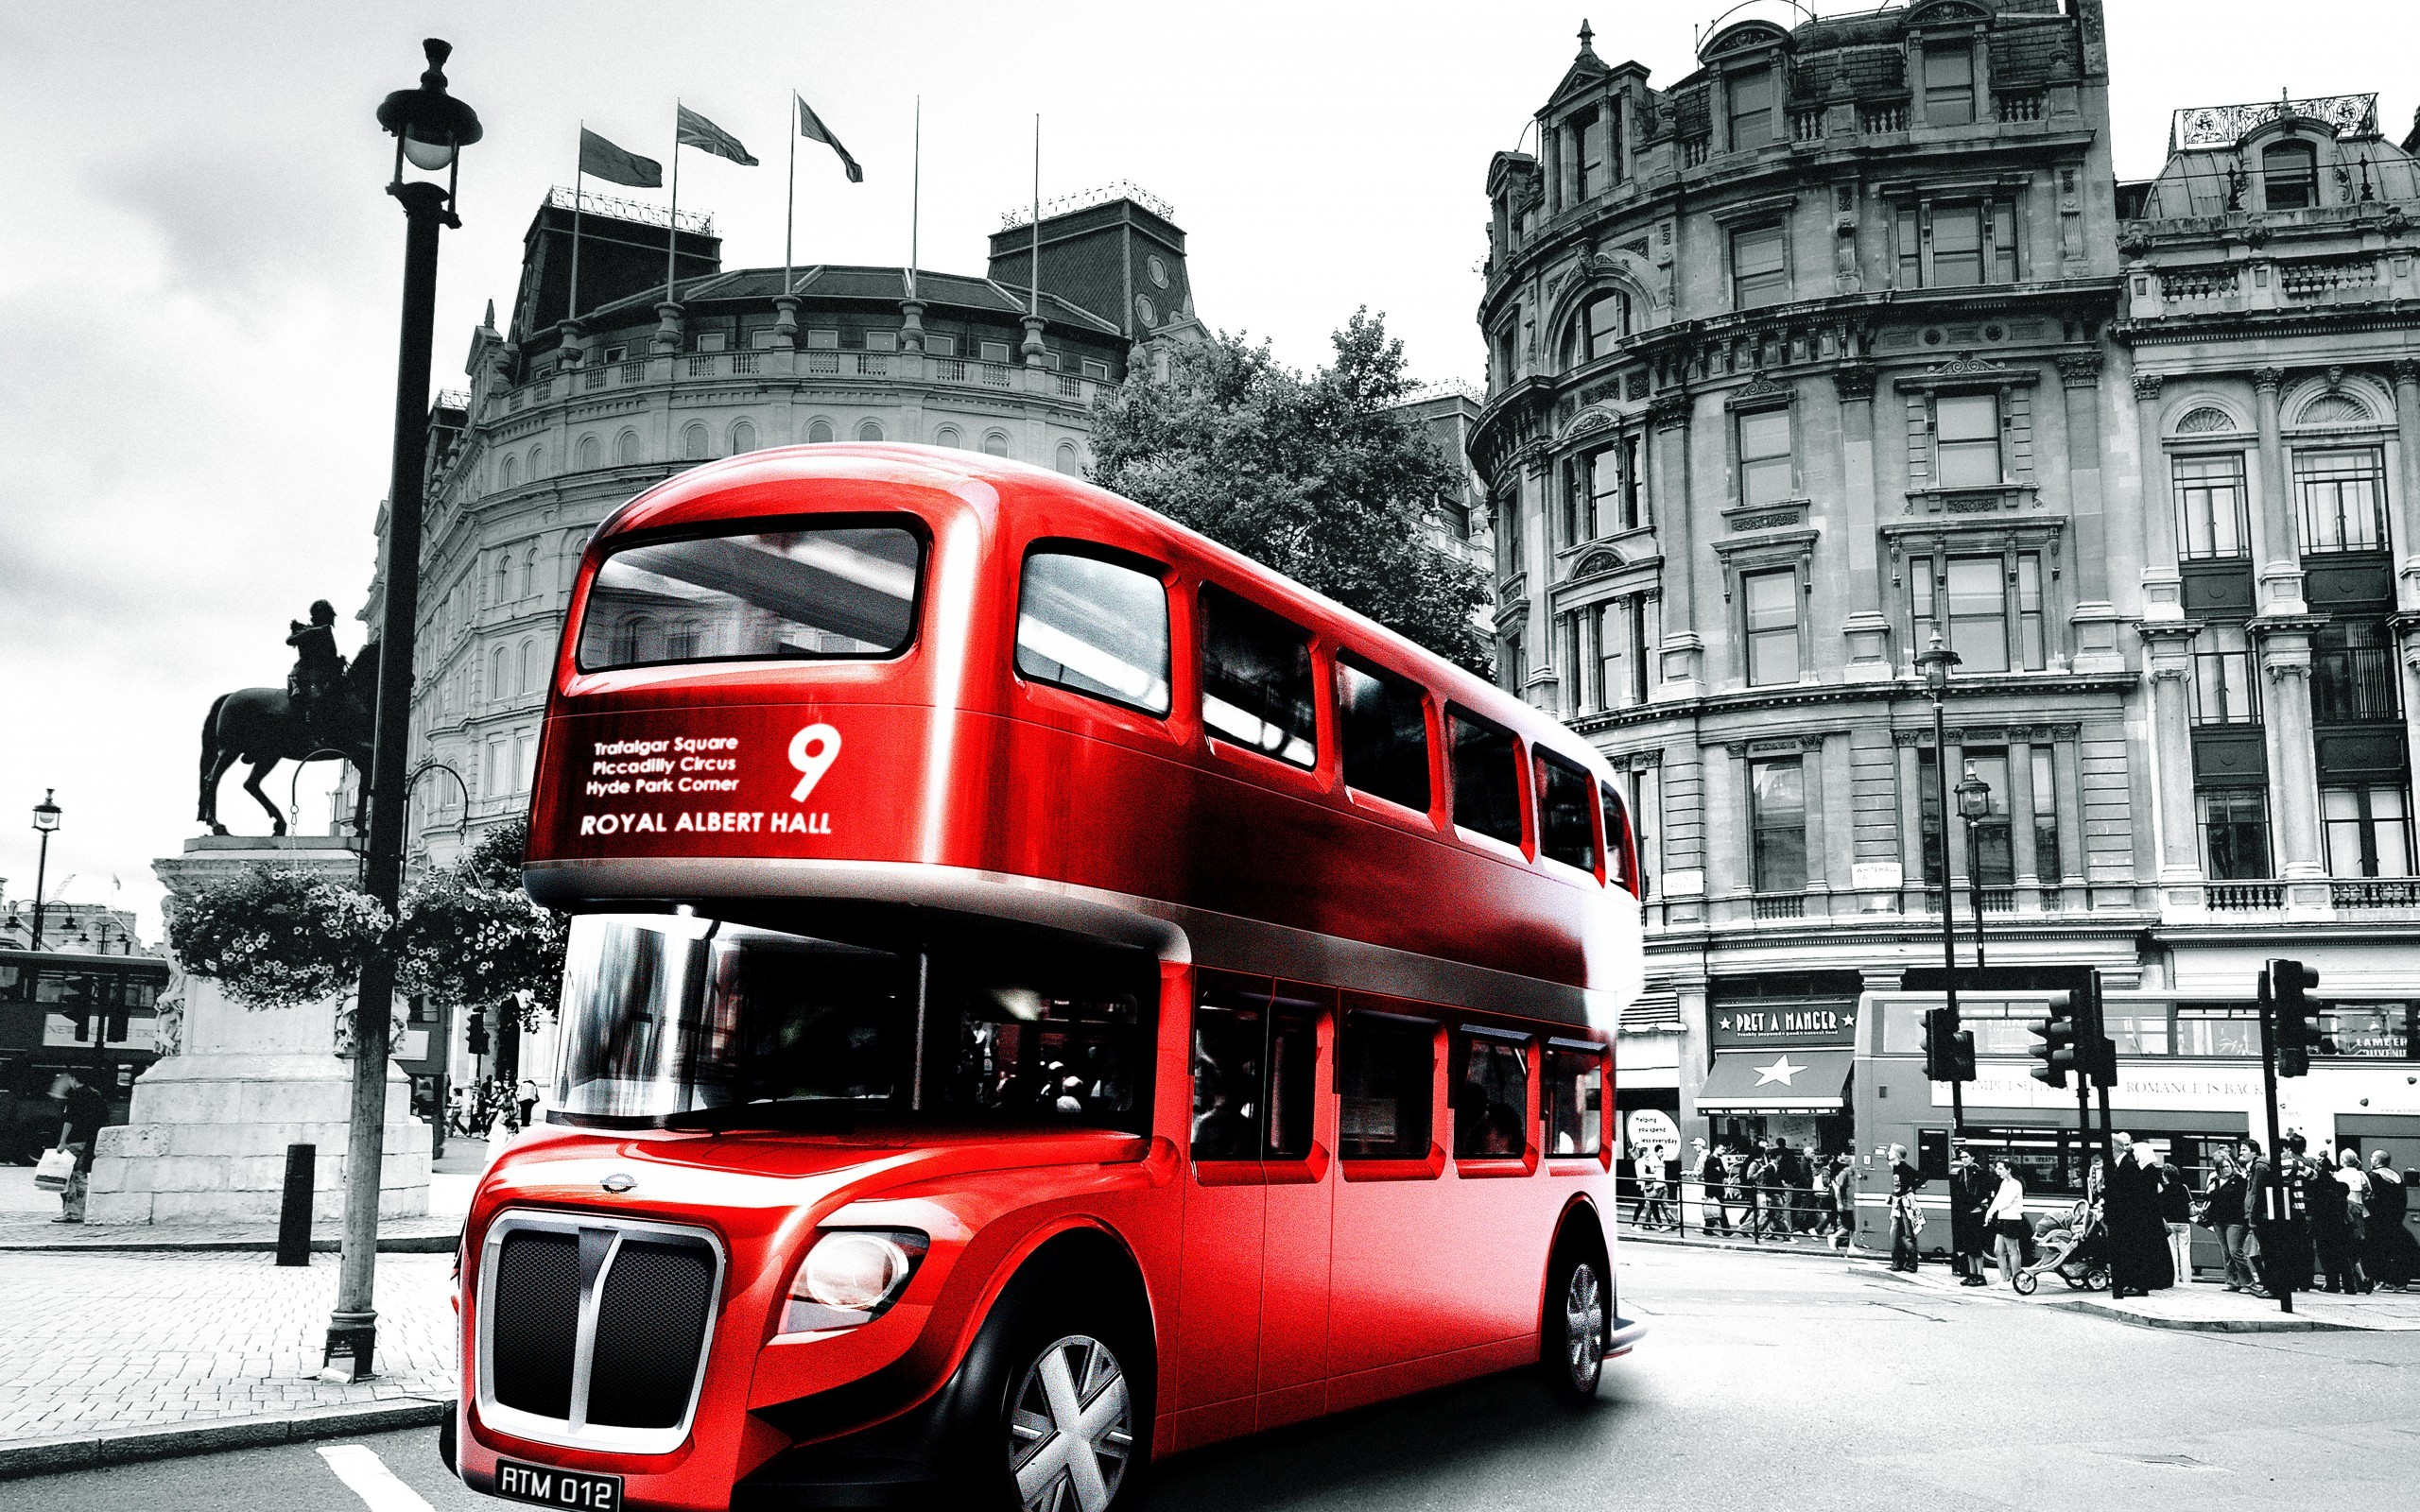 2560x1600 Download wallpaper london, england, bus, black and white, city .